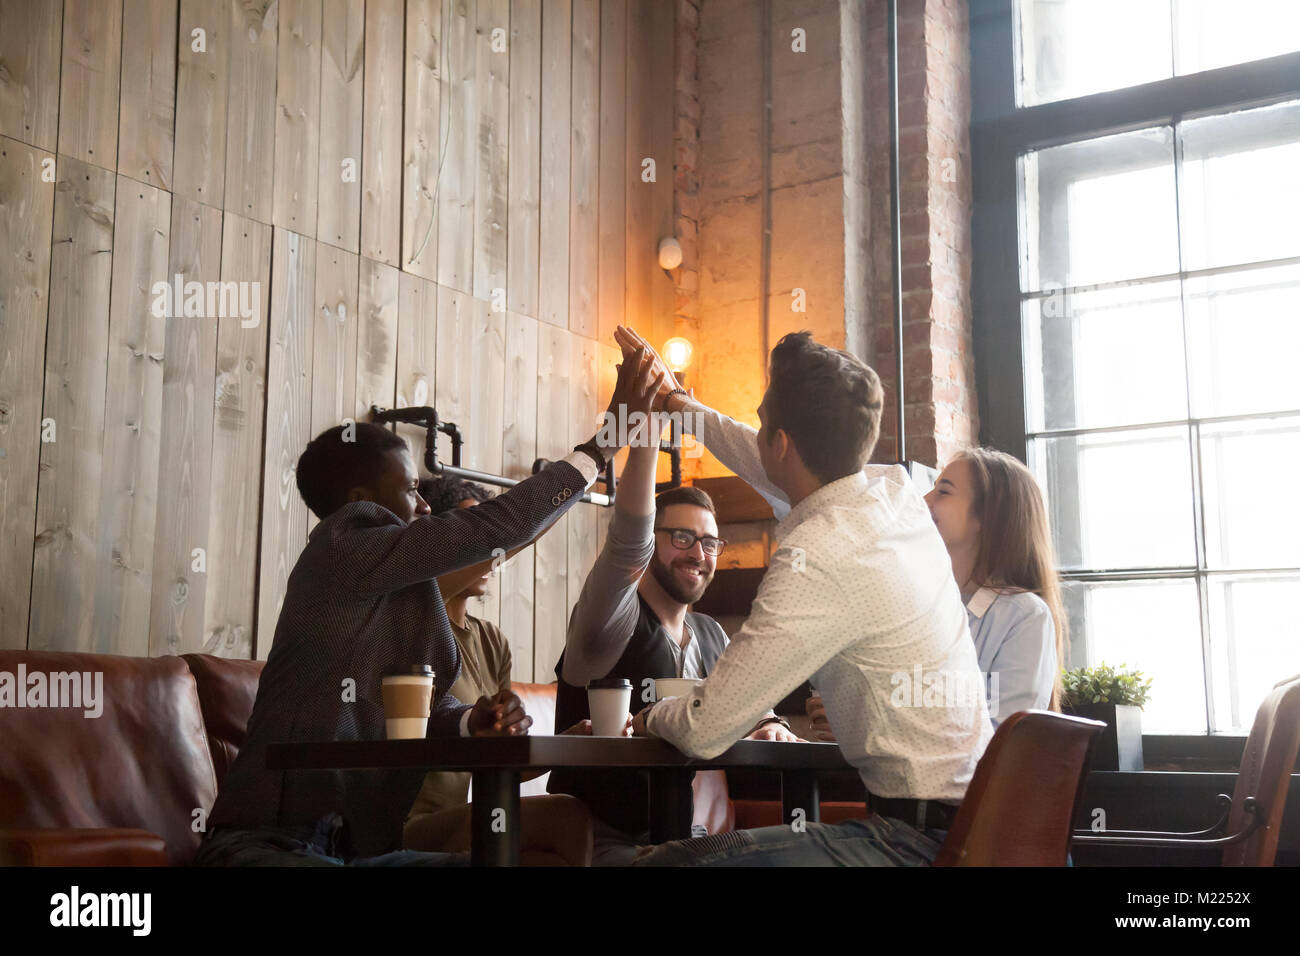 Multiracial friends group giving high five sitting at cafe table - Stock Image